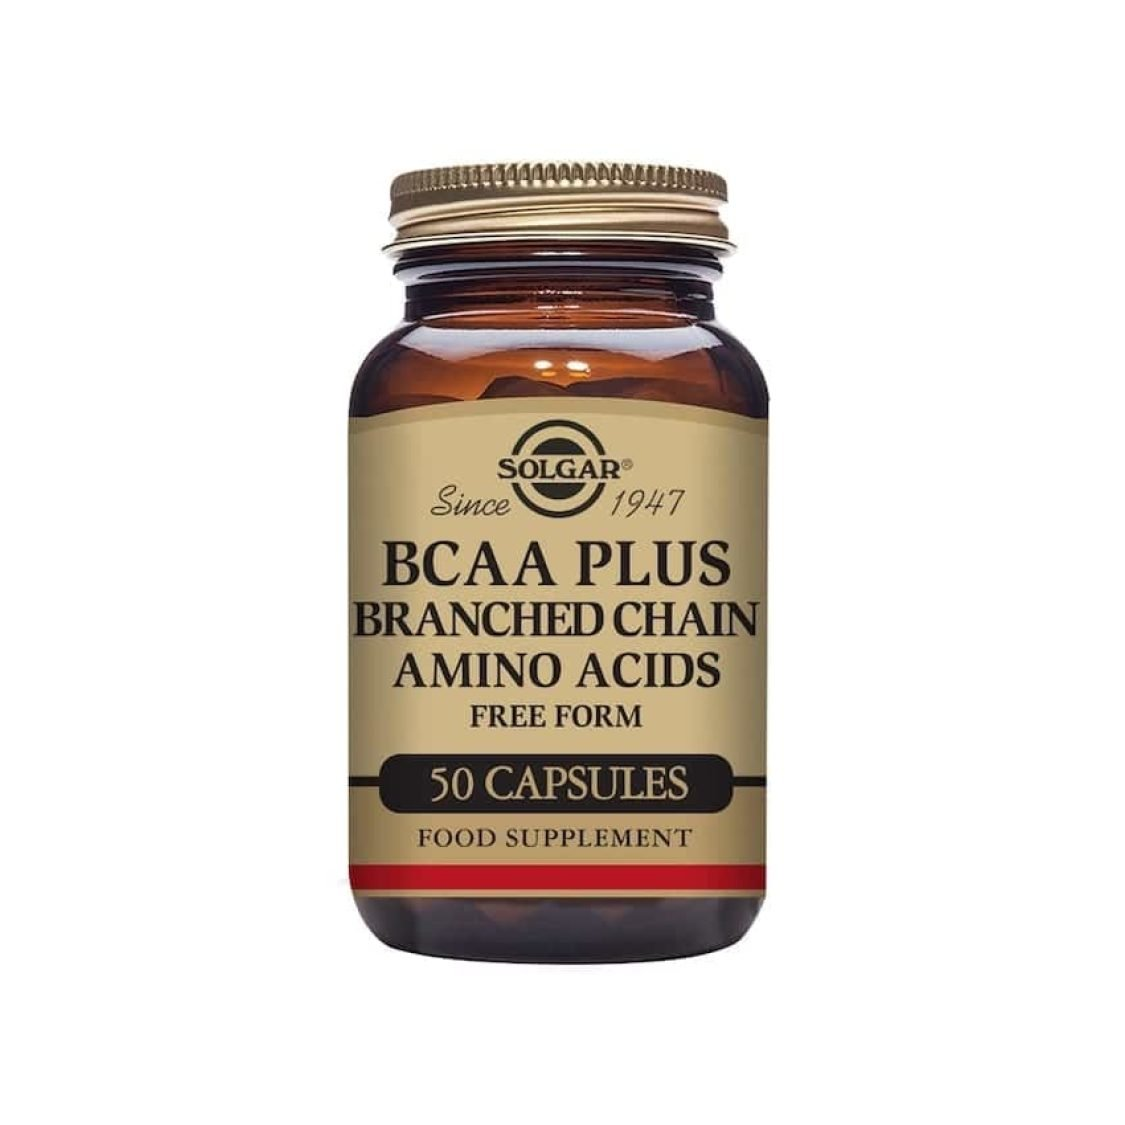 Solgar - Free Form Amino Acids - BCAA Plus Vegicaps - Size: 50